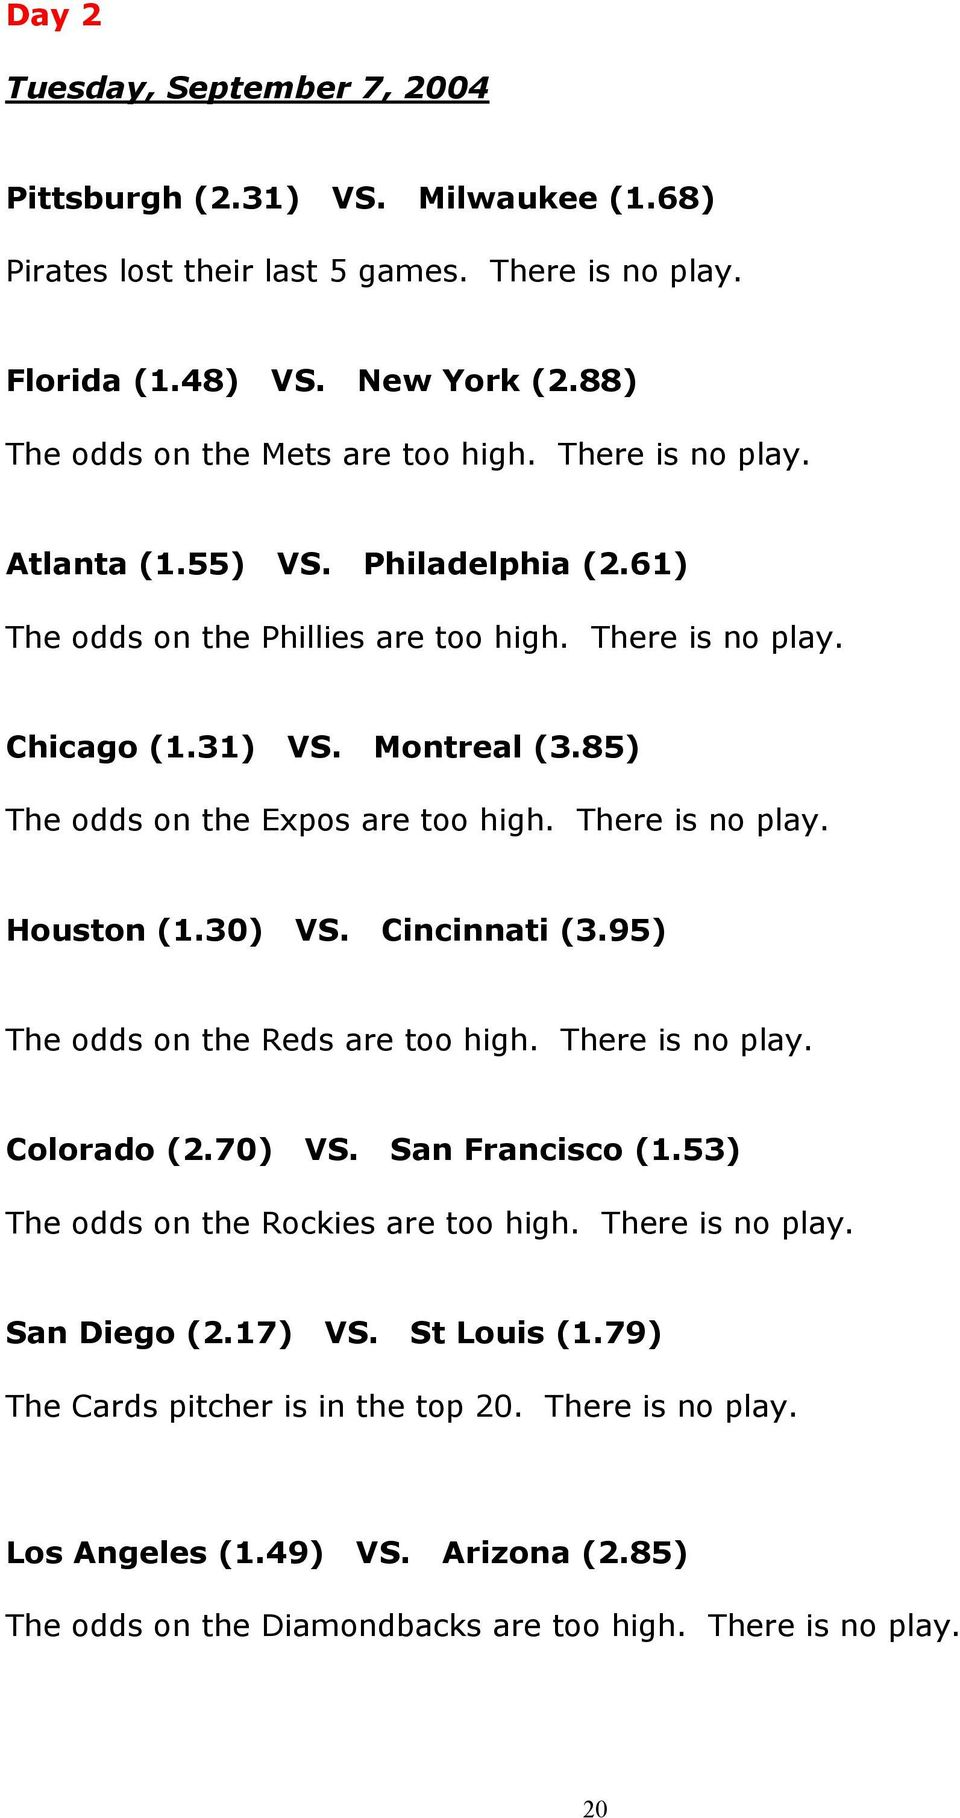 There is no play. Houston (1.30) VS. Cincinnati (3.95) The odds on the Reds are too high. There is no play. Colorado (2.70) VS. San Francisco (1.53) The odds on the Rockies are too high.